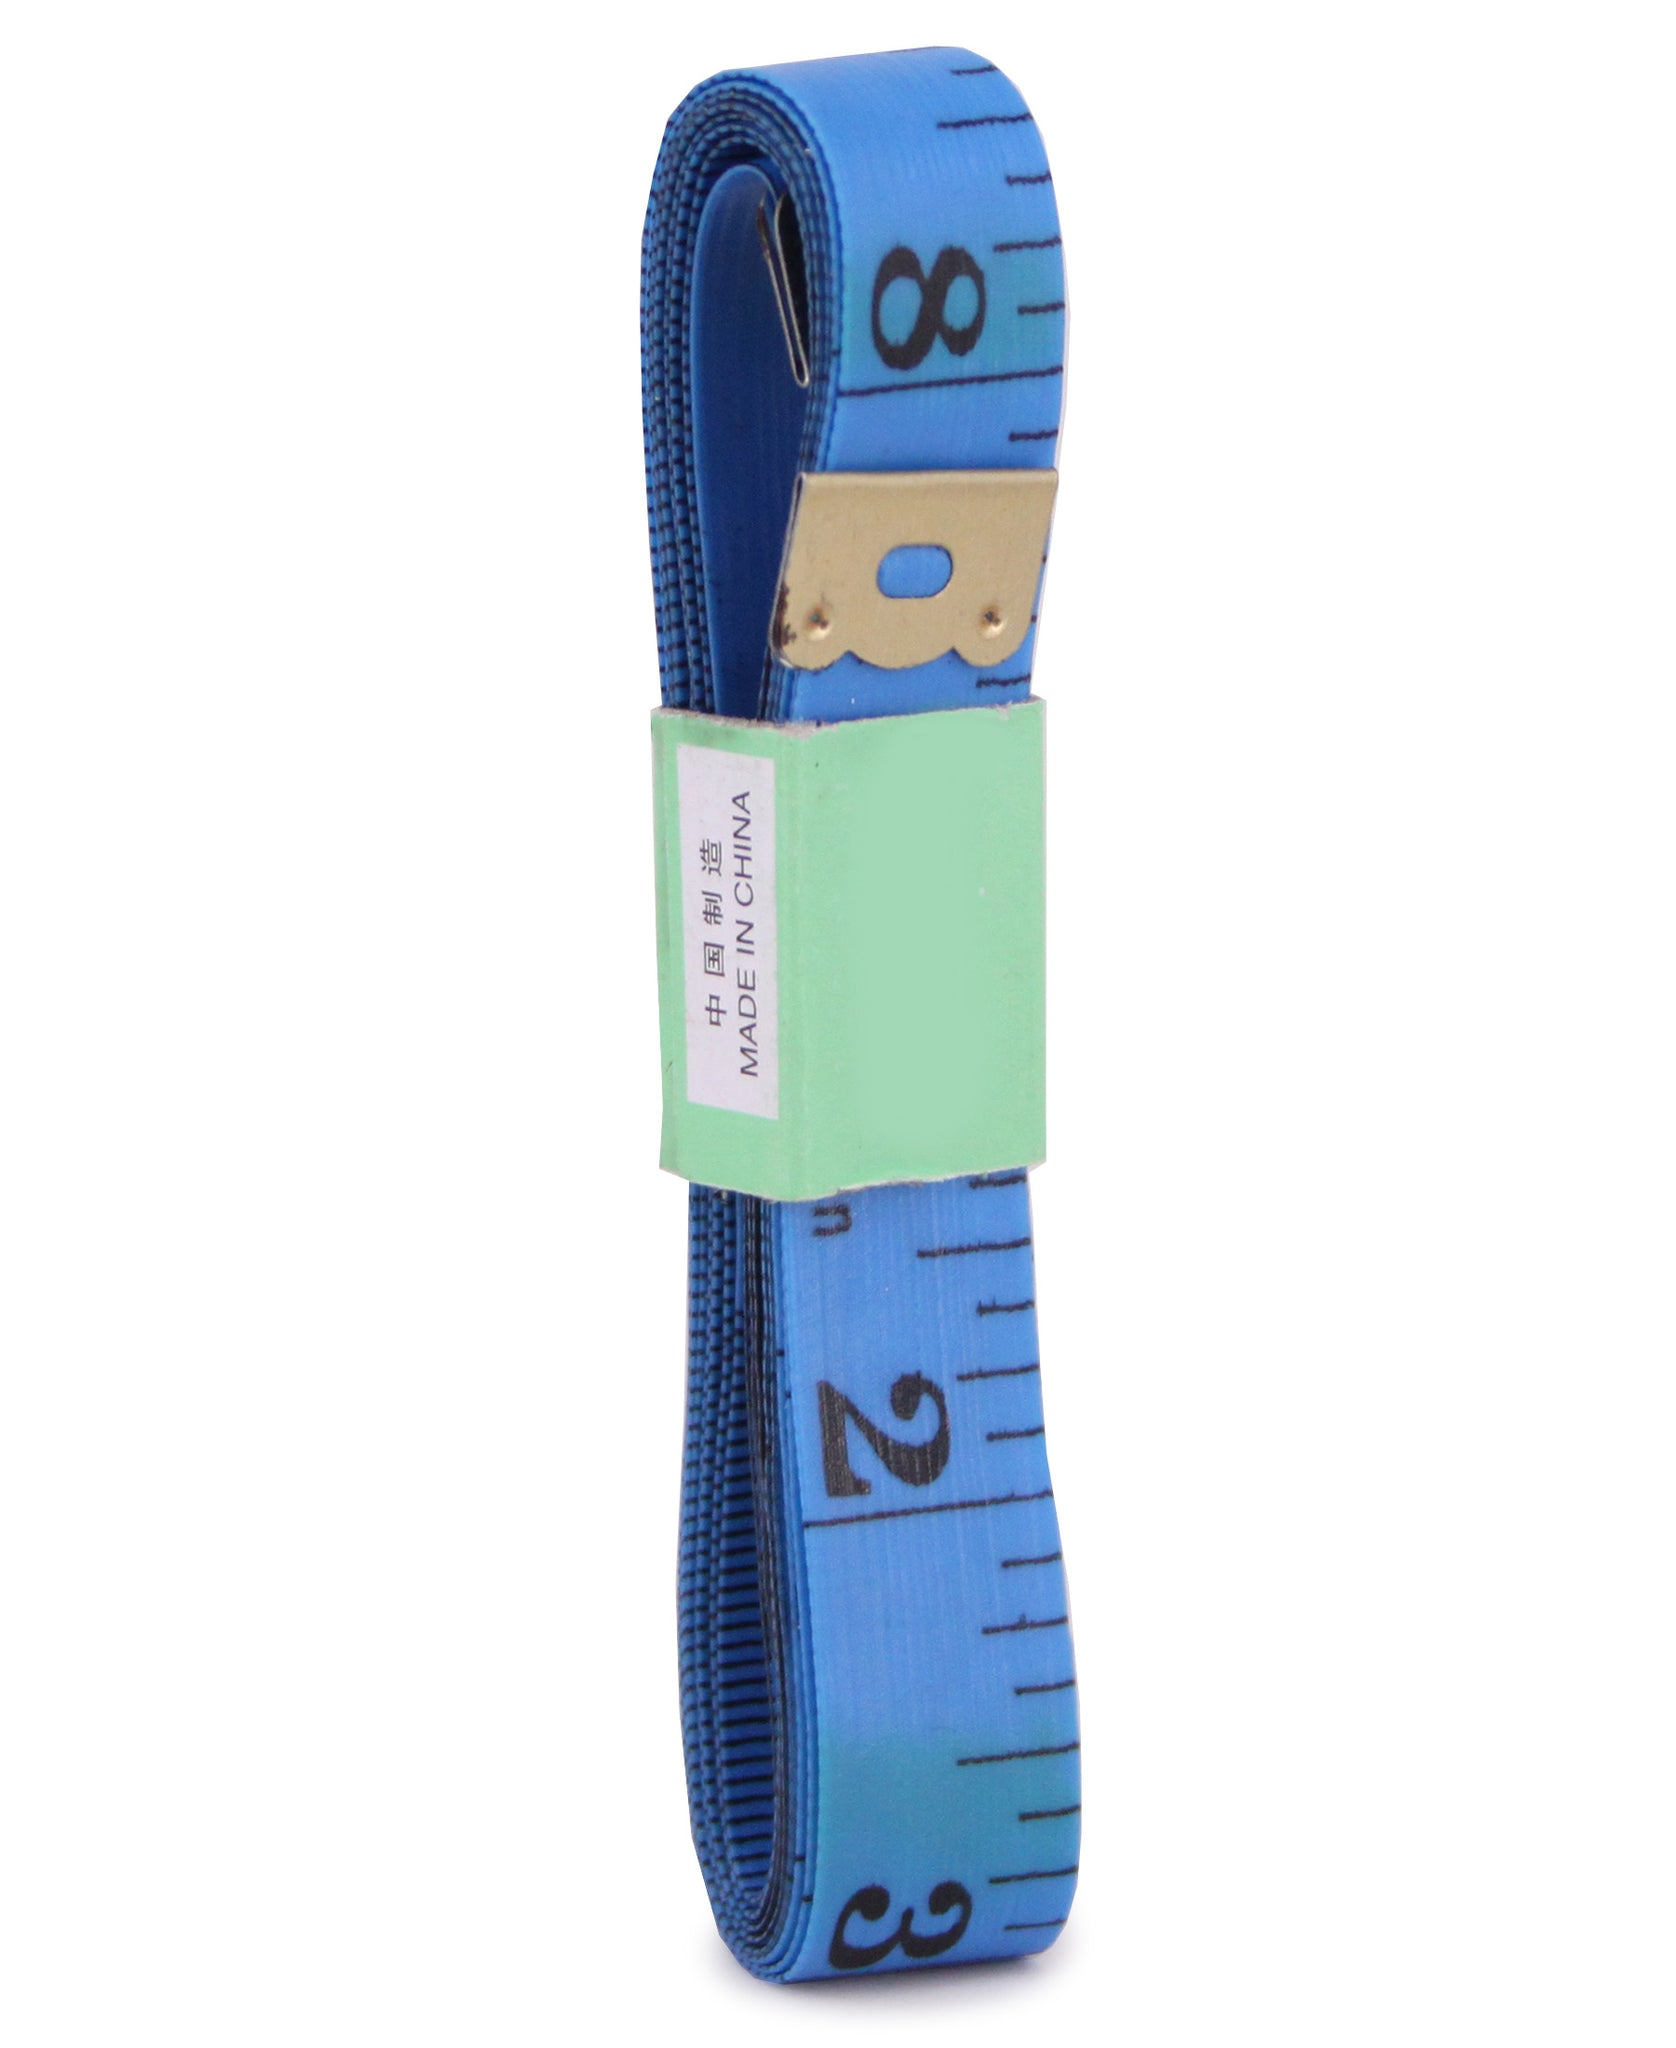 Tailors Measuring Tape - Blue